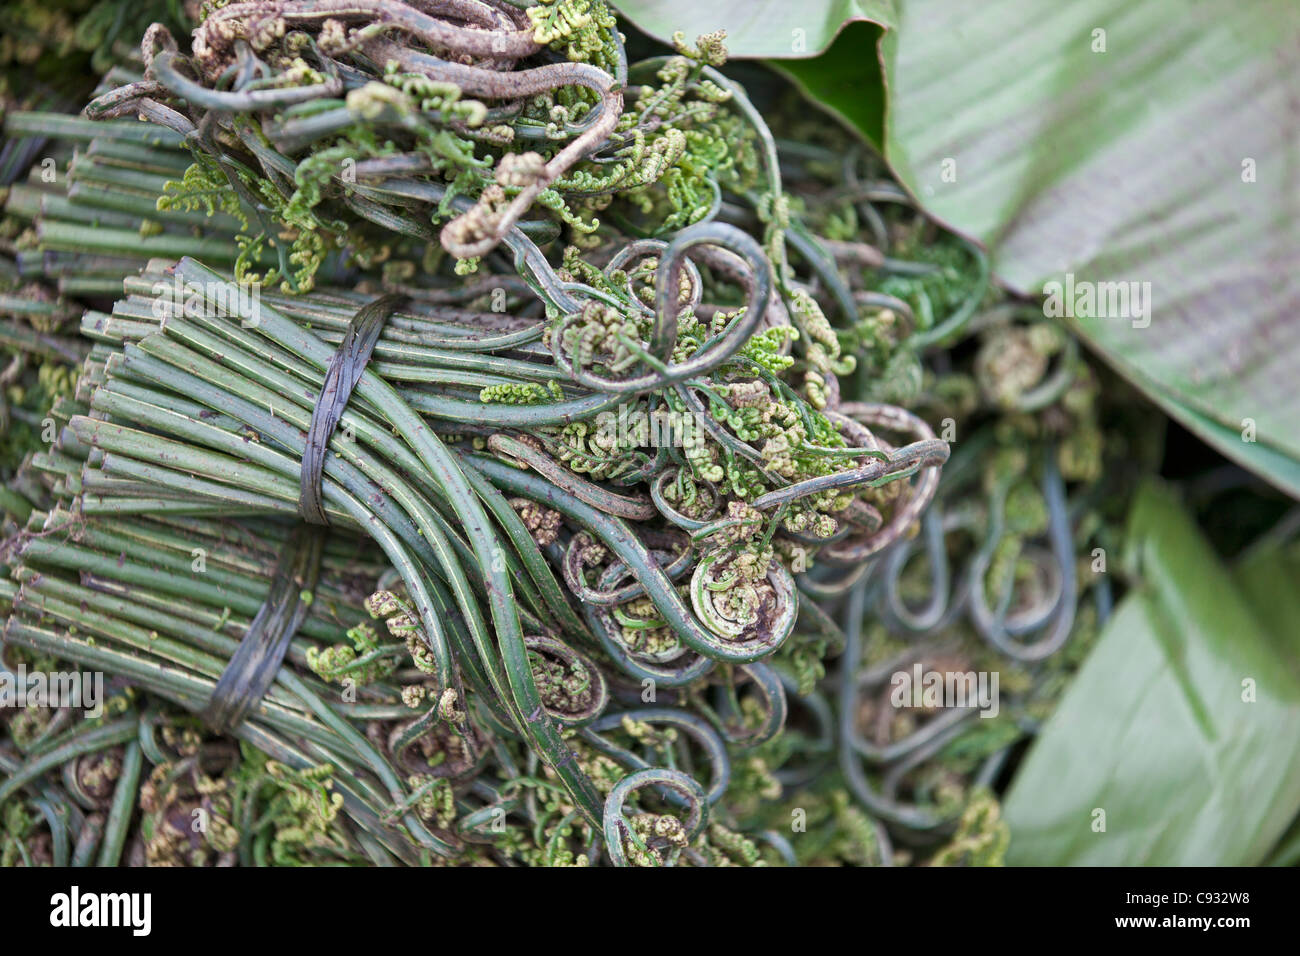 Fiddlehead fern on sale at Paro market.  These greens are a delicious seasonal vegetable in Bhutan. - Stock Image